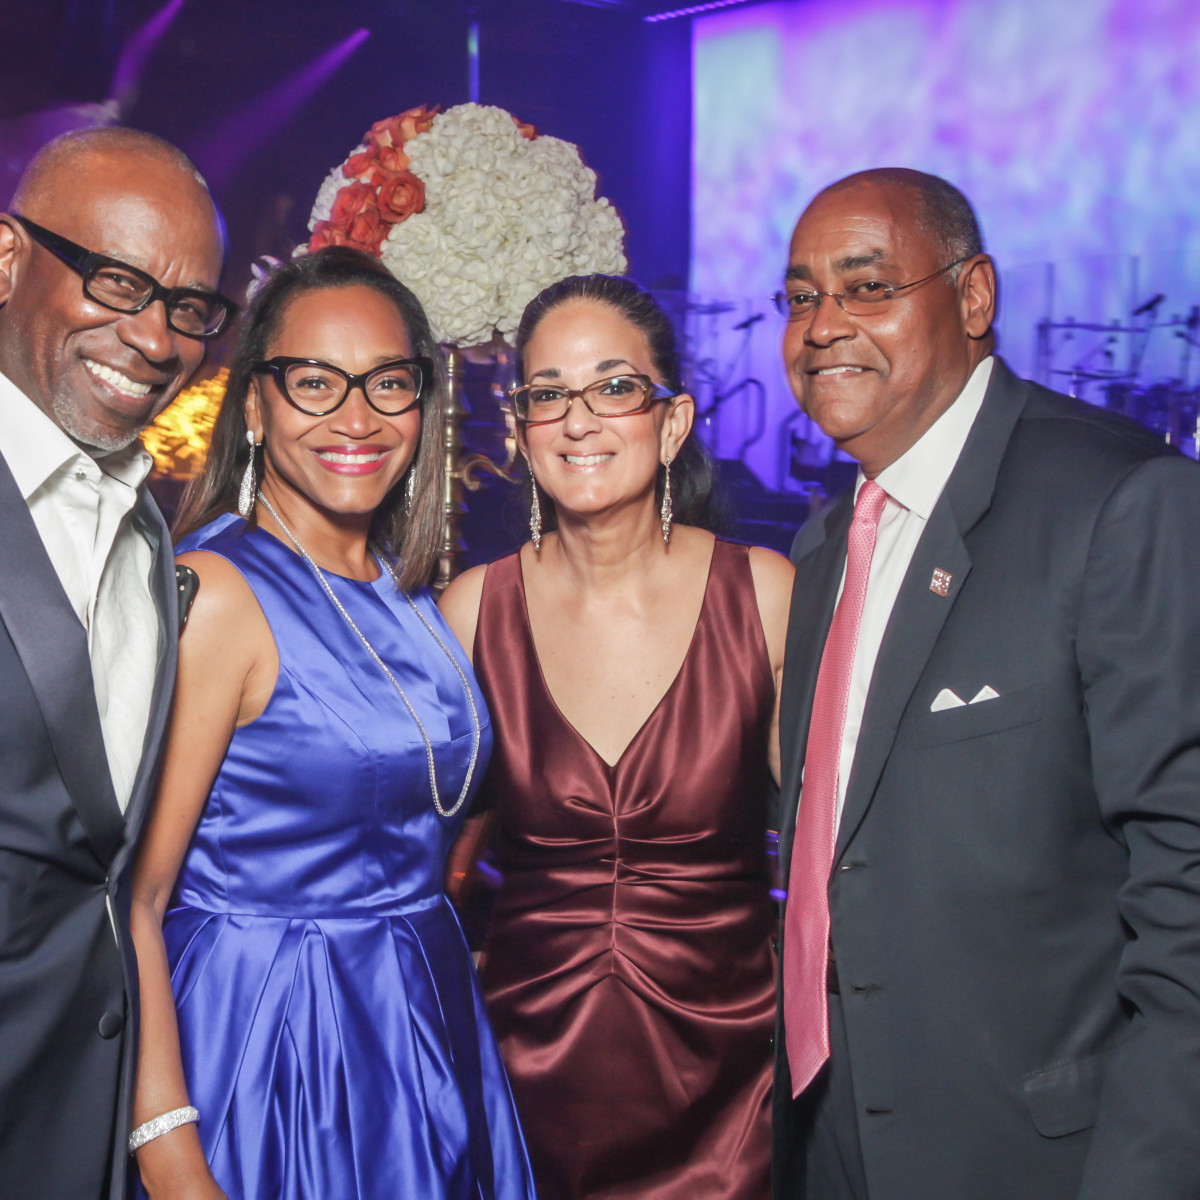 CAMAC 30th anny gala, Jan. 2016, Gerald Smith, Anita Smith, Licia Green Ellis, State Sen. Rodney Ellis